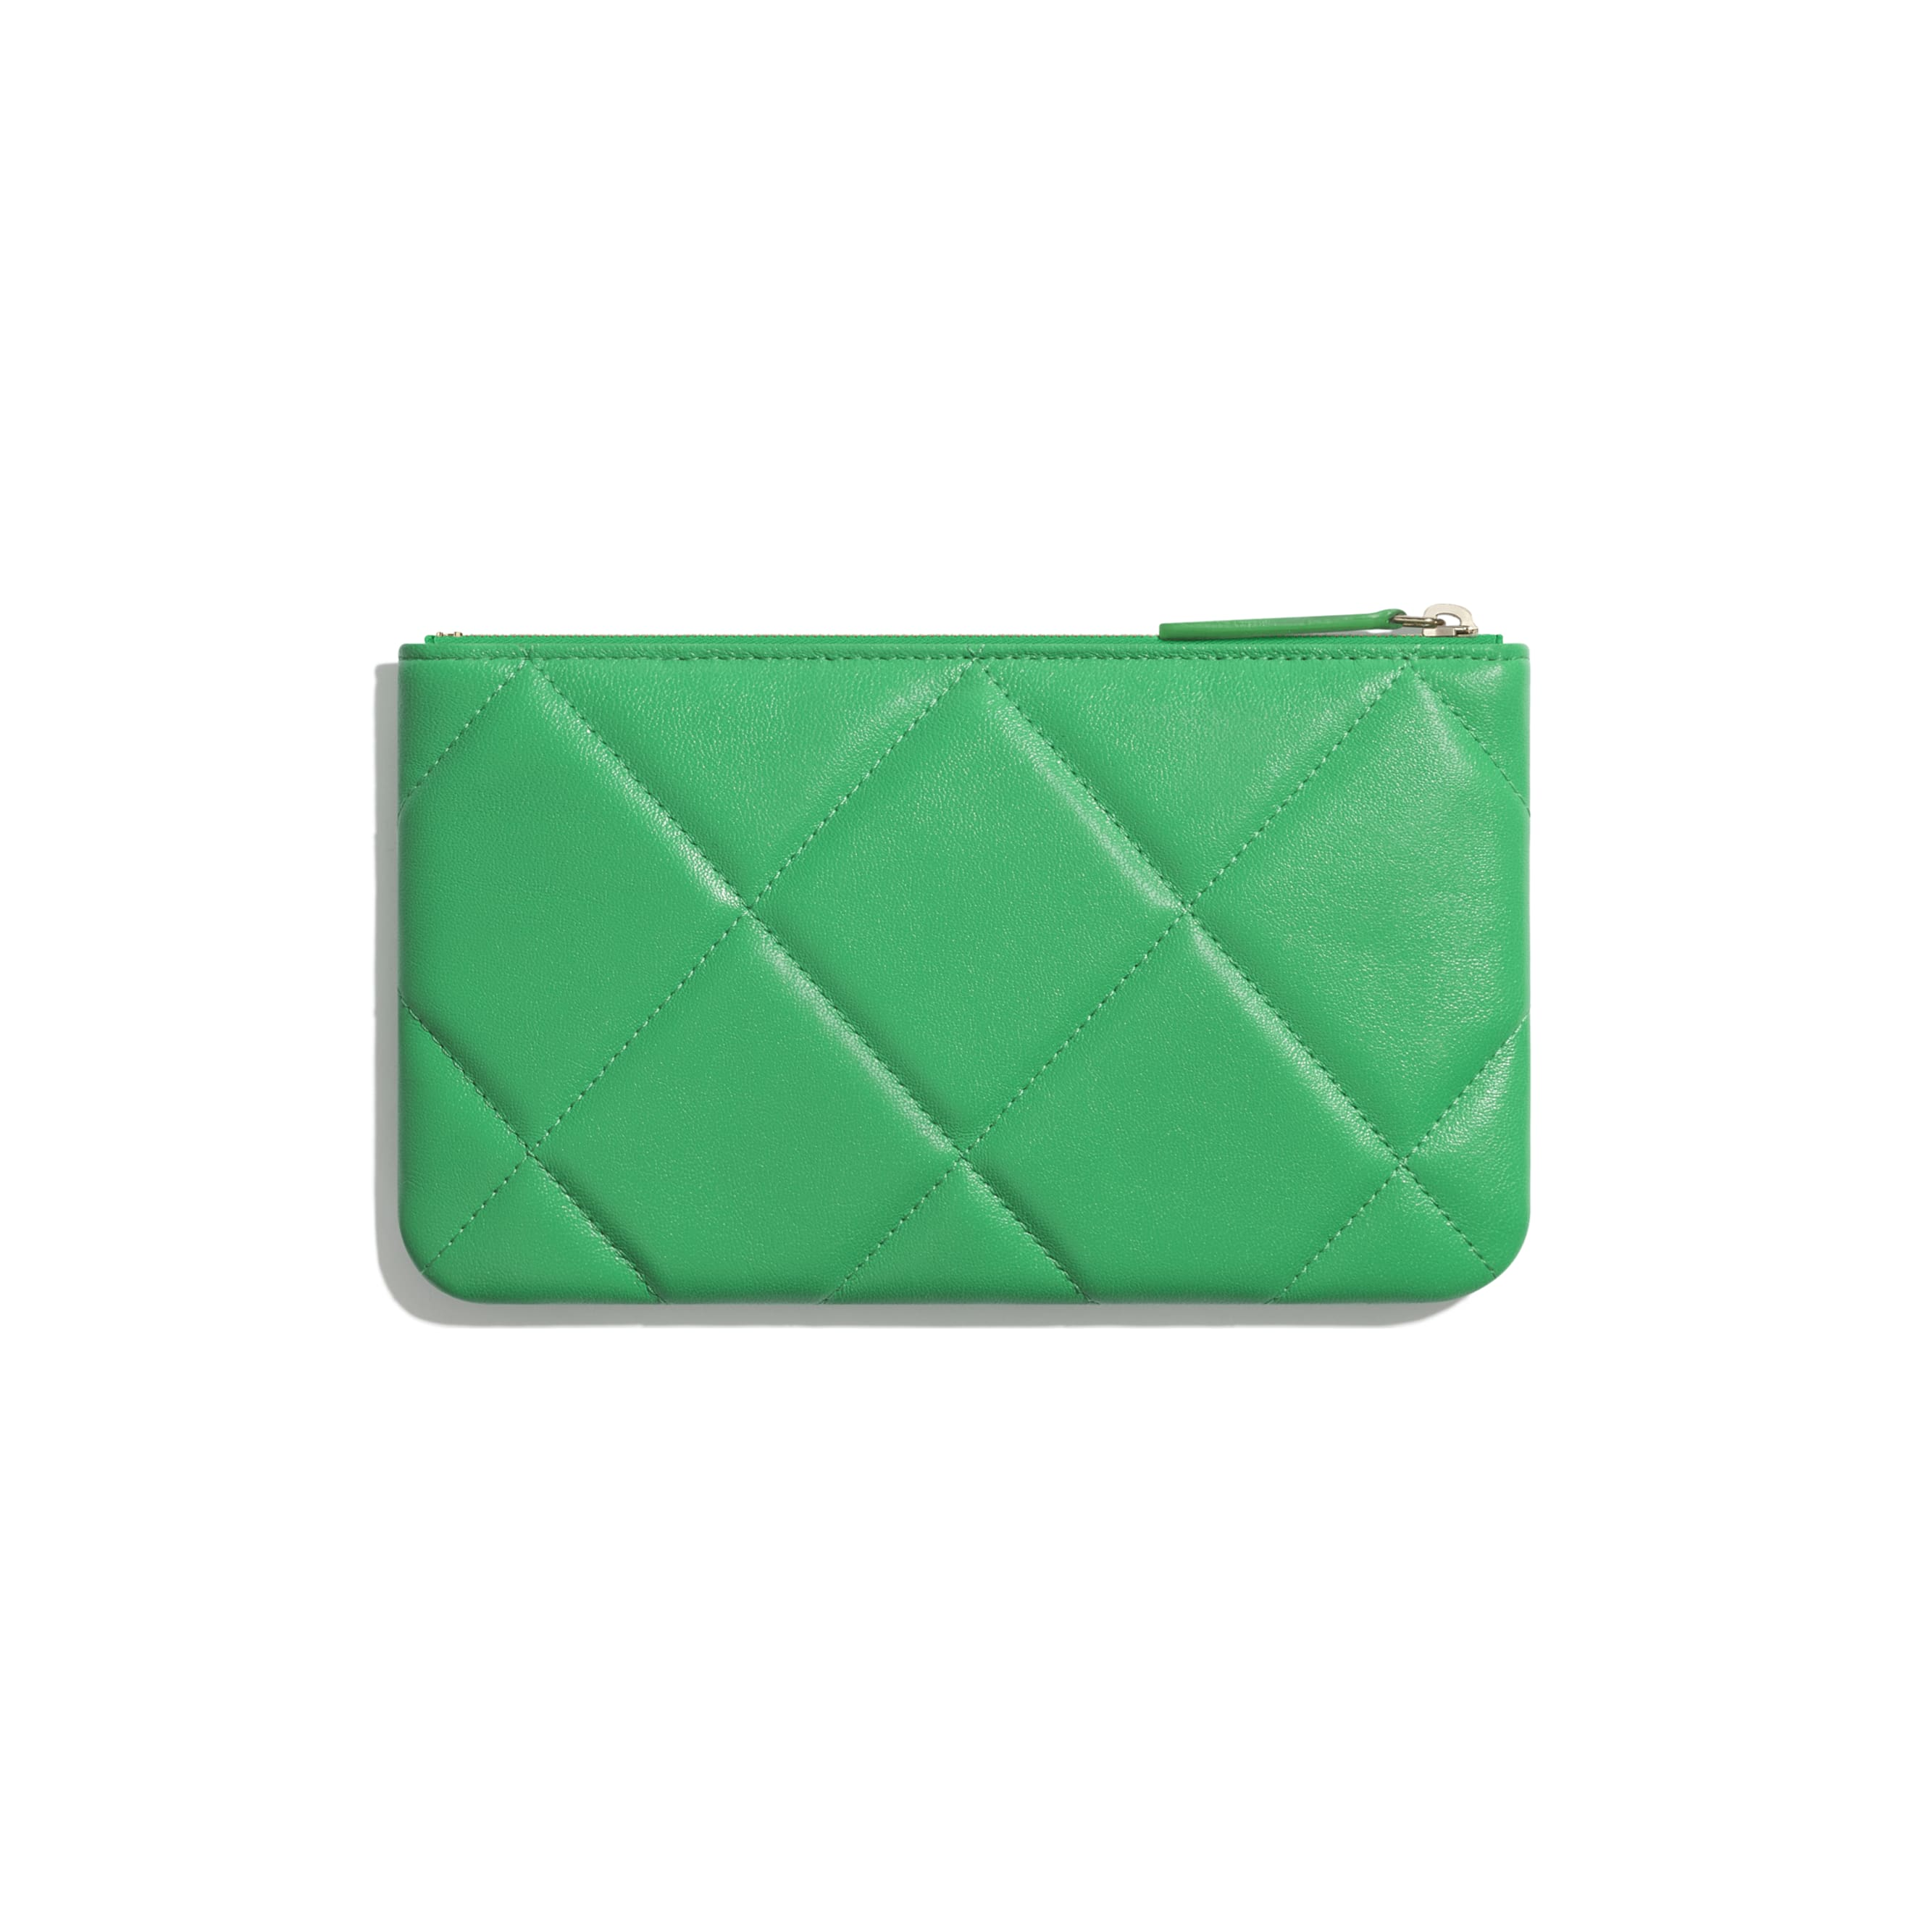 CHANEL 19 Small Pouch - Green - Lambskin, Gold-Tone, Silver-Tone & Ruthenium-Finish Metal - CHANEL - Alternative view - see standard sized version